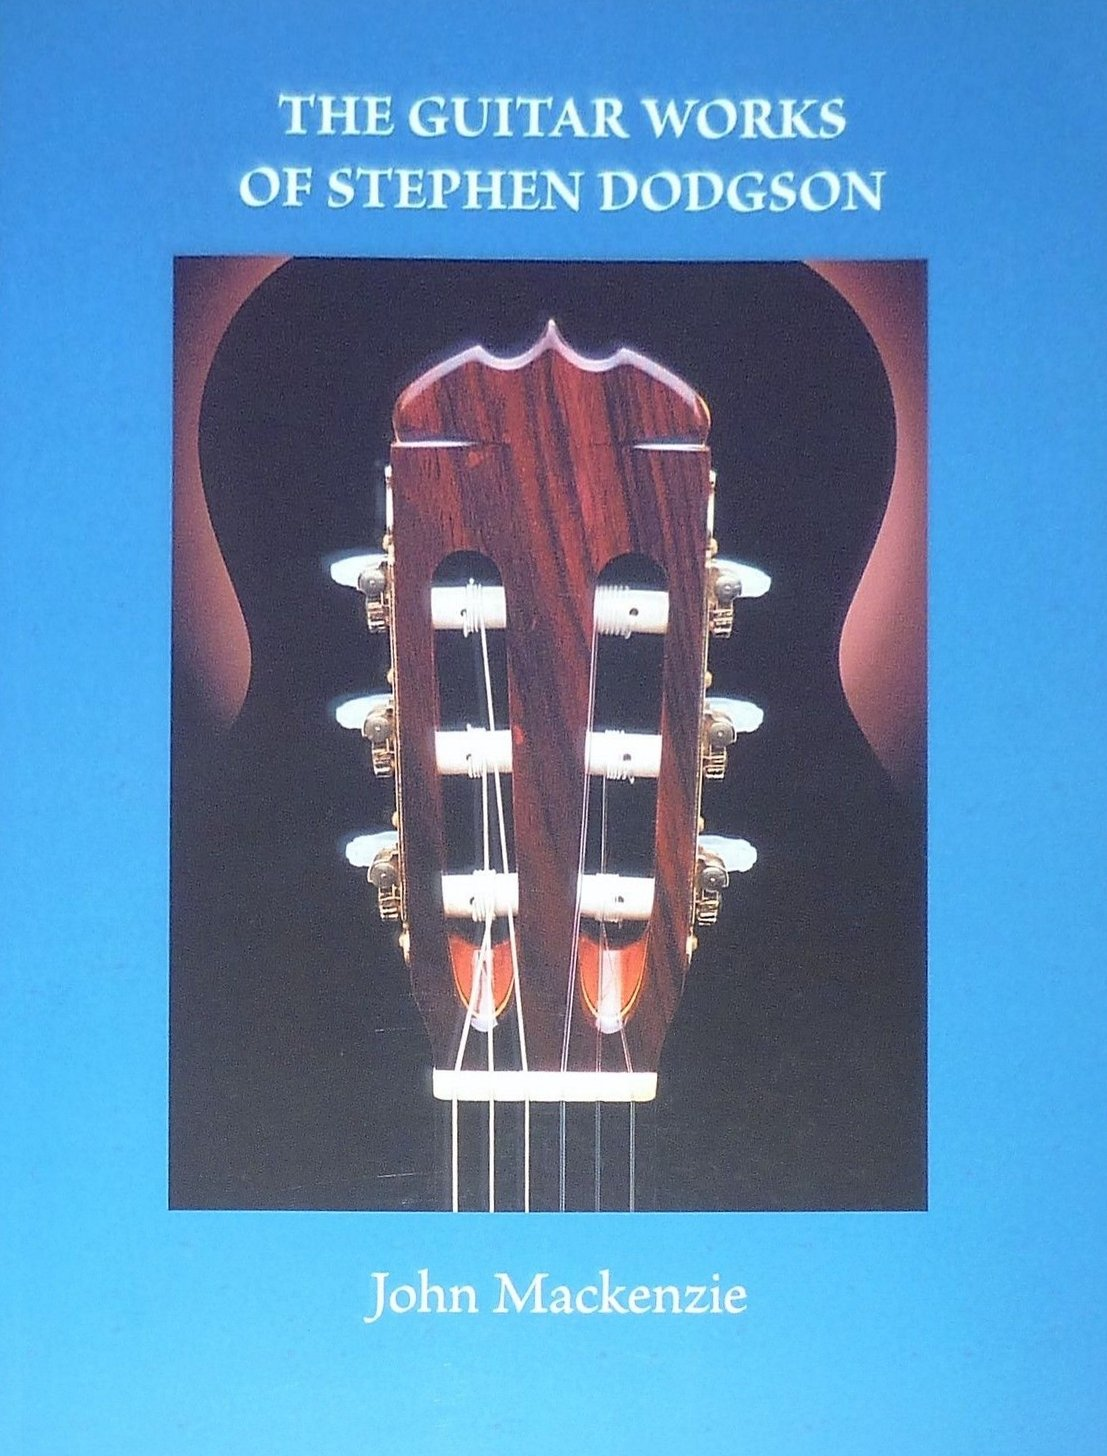 The Guitar Works of Stephen Dodgson, John Mackenzie